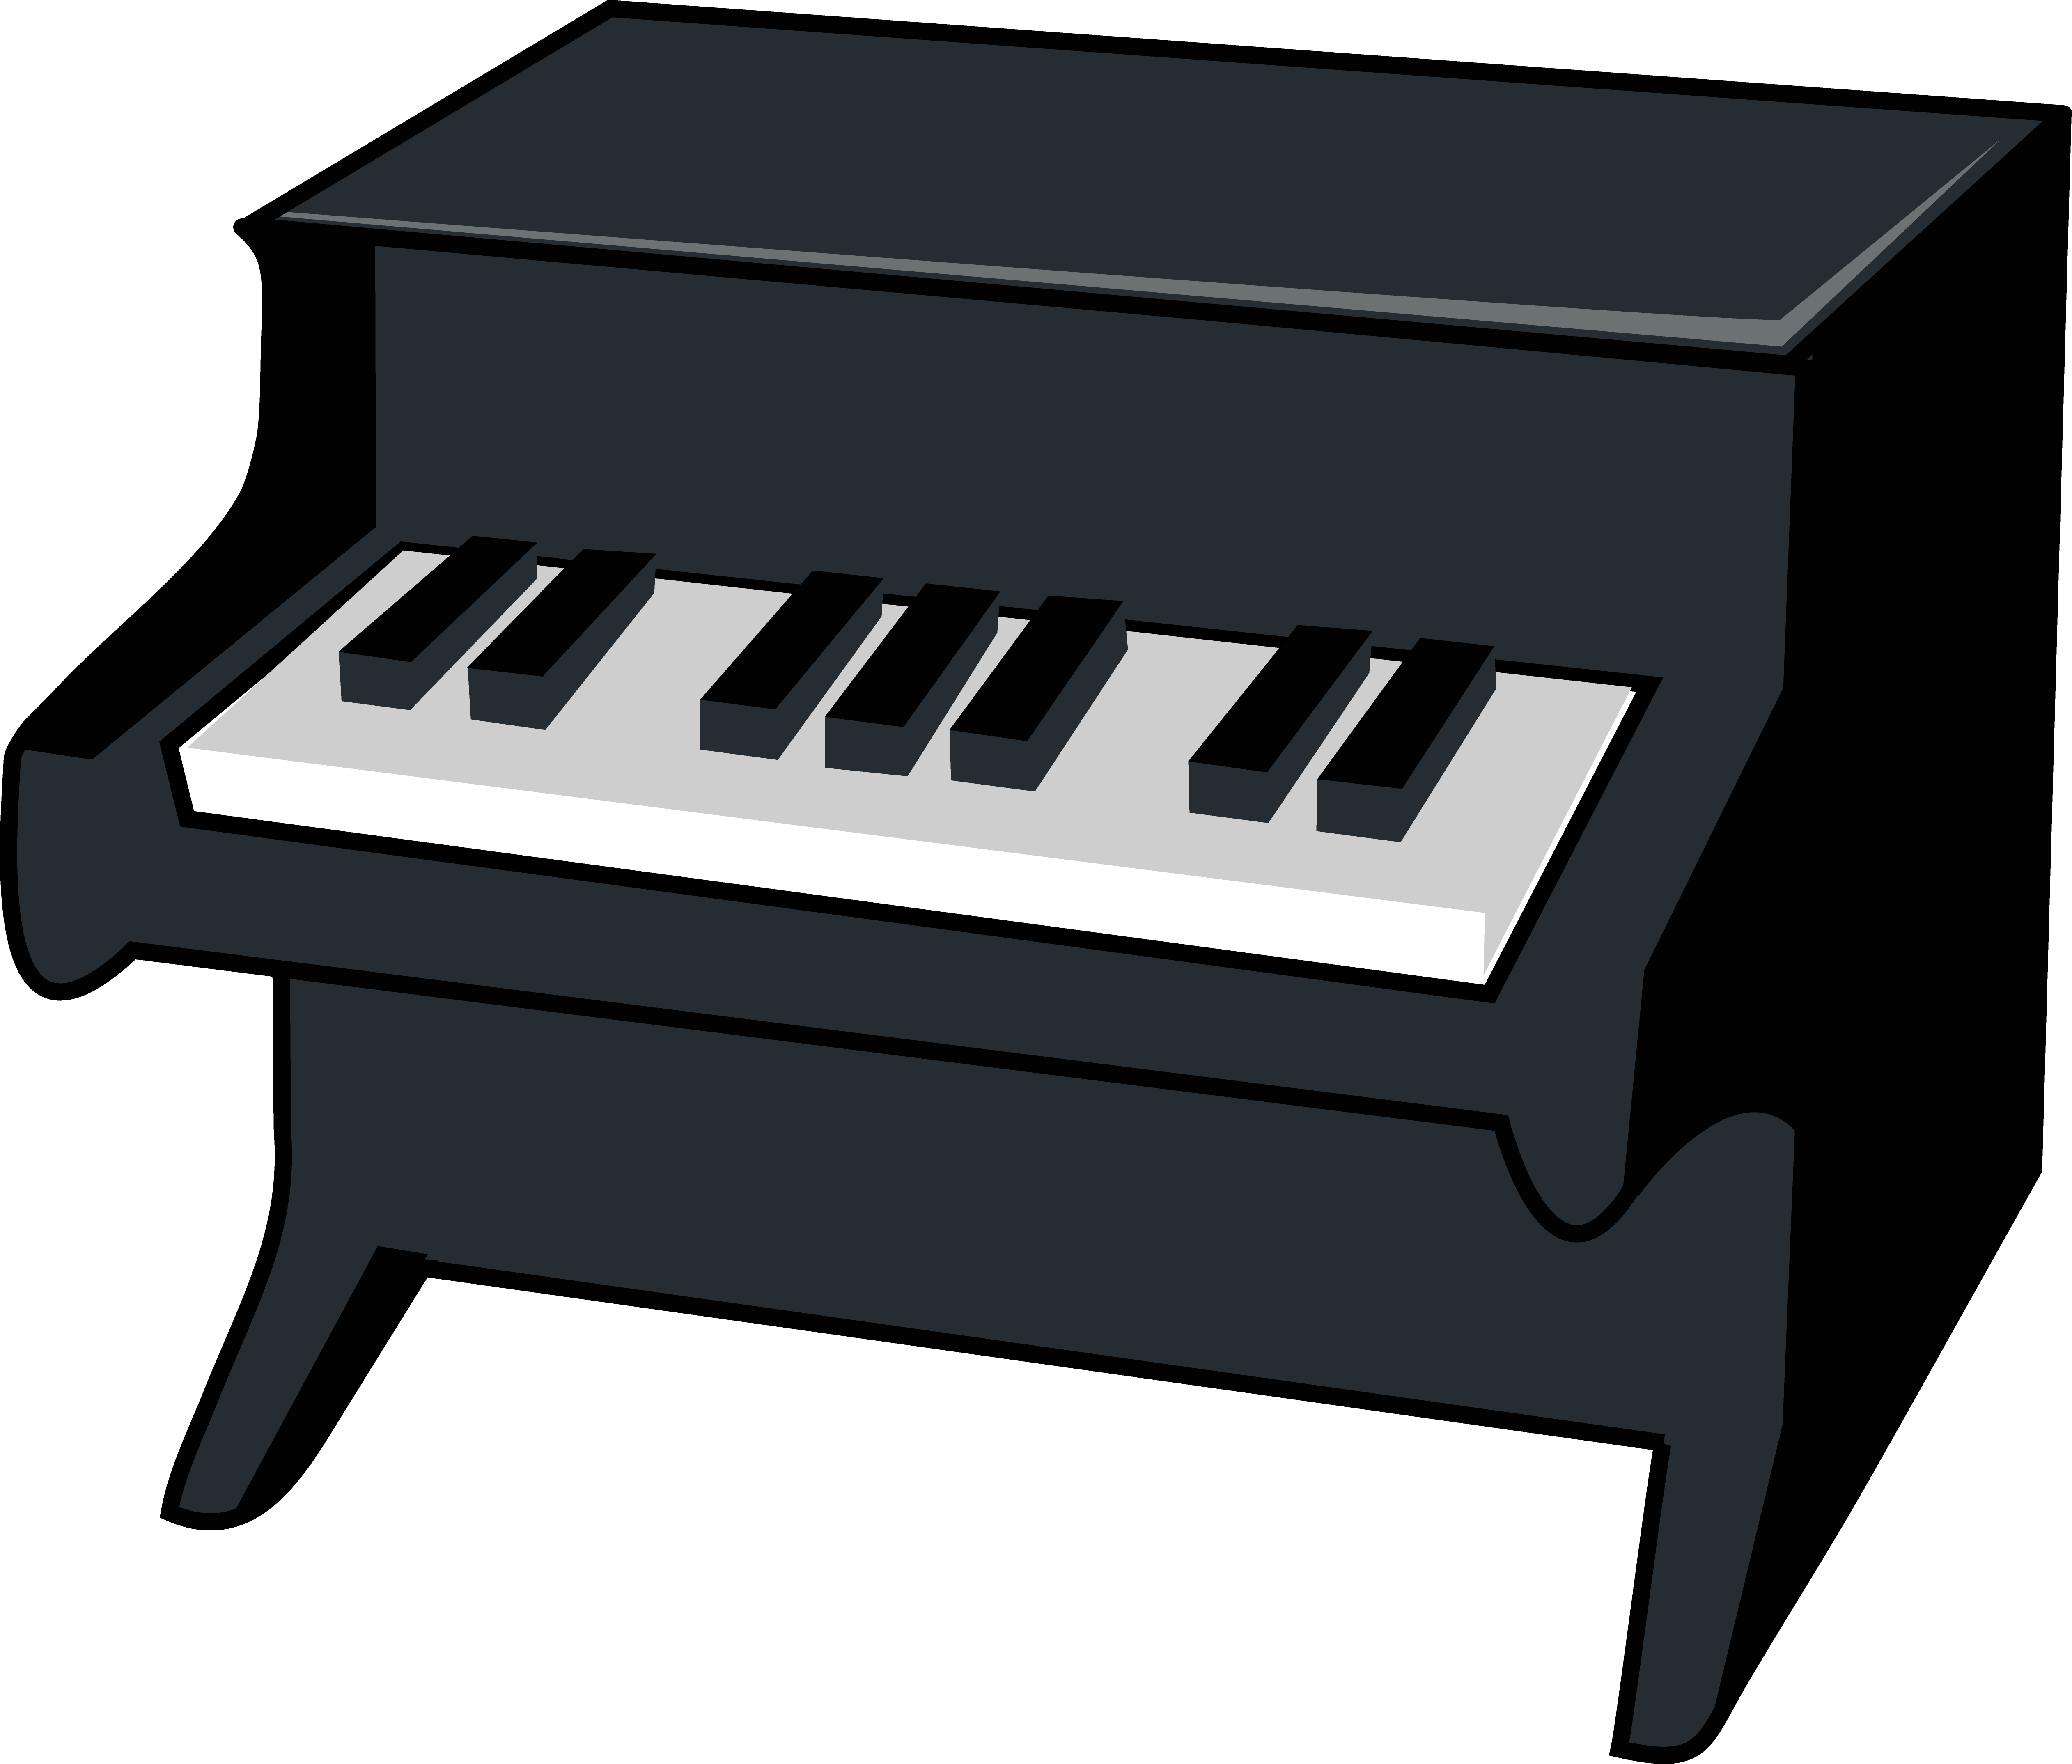 5047x4297 Piano Clip Art Free Download Free Clipart Images 2